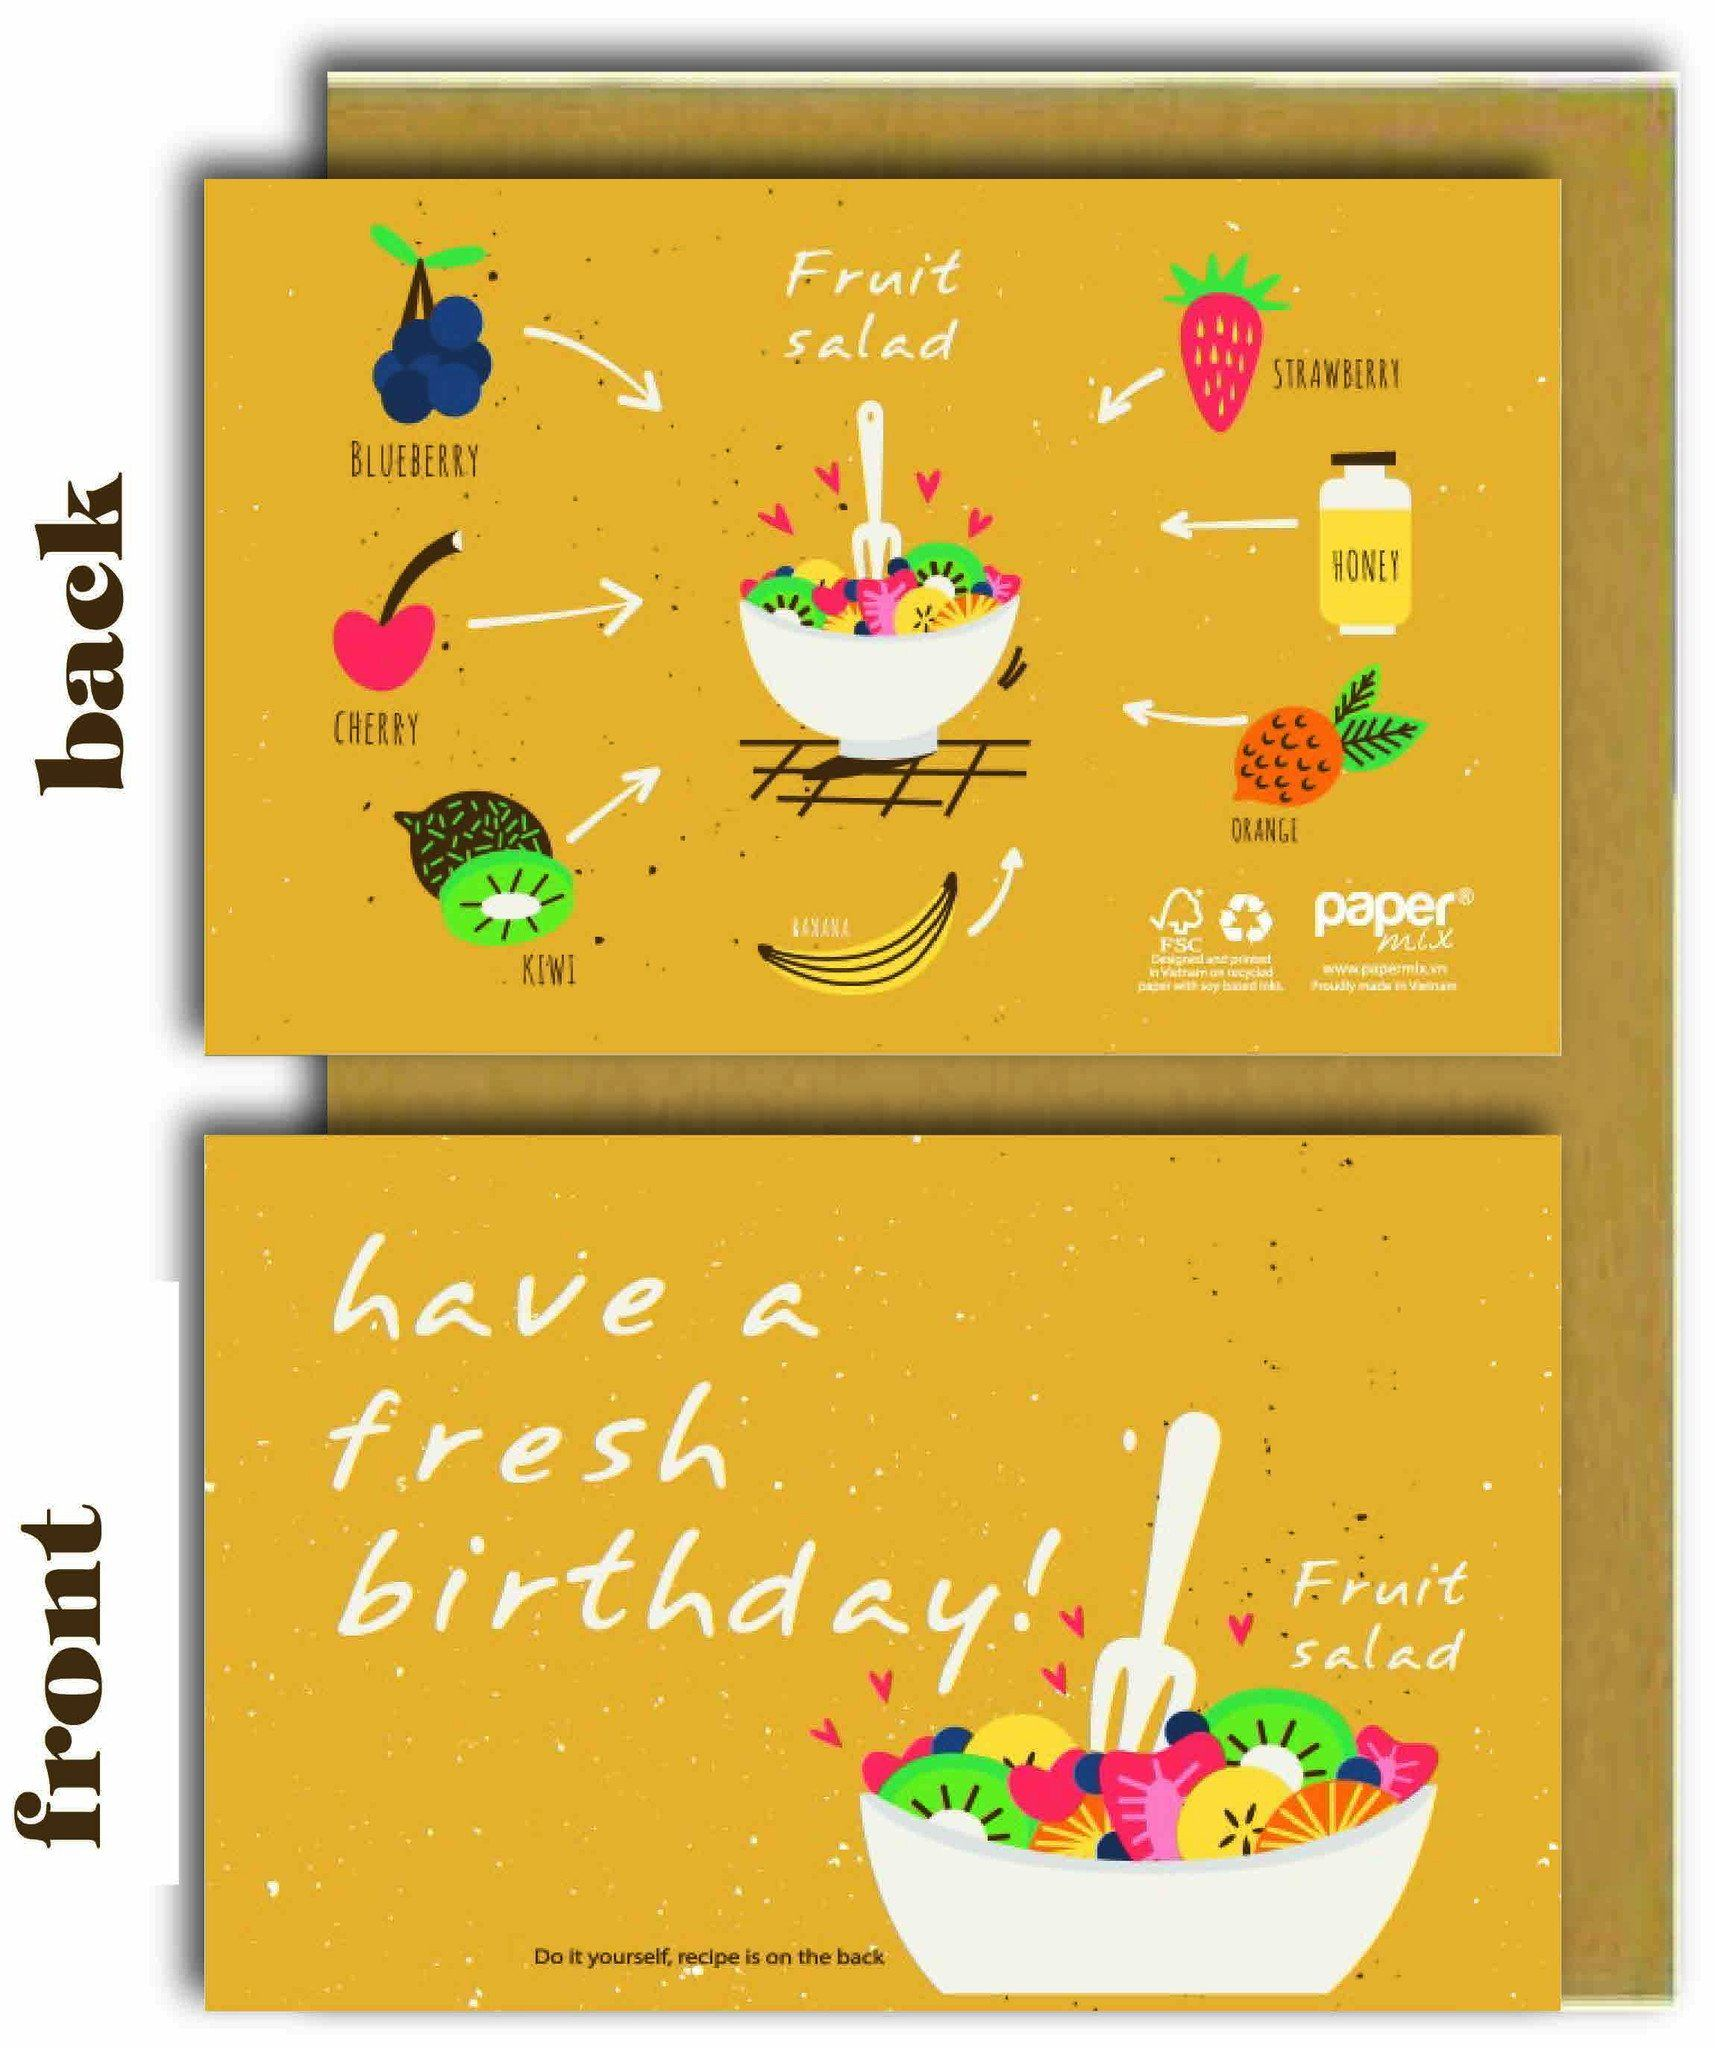 Have A Fresh Birthday (Fruit Salad) Greeting Card - Naiise